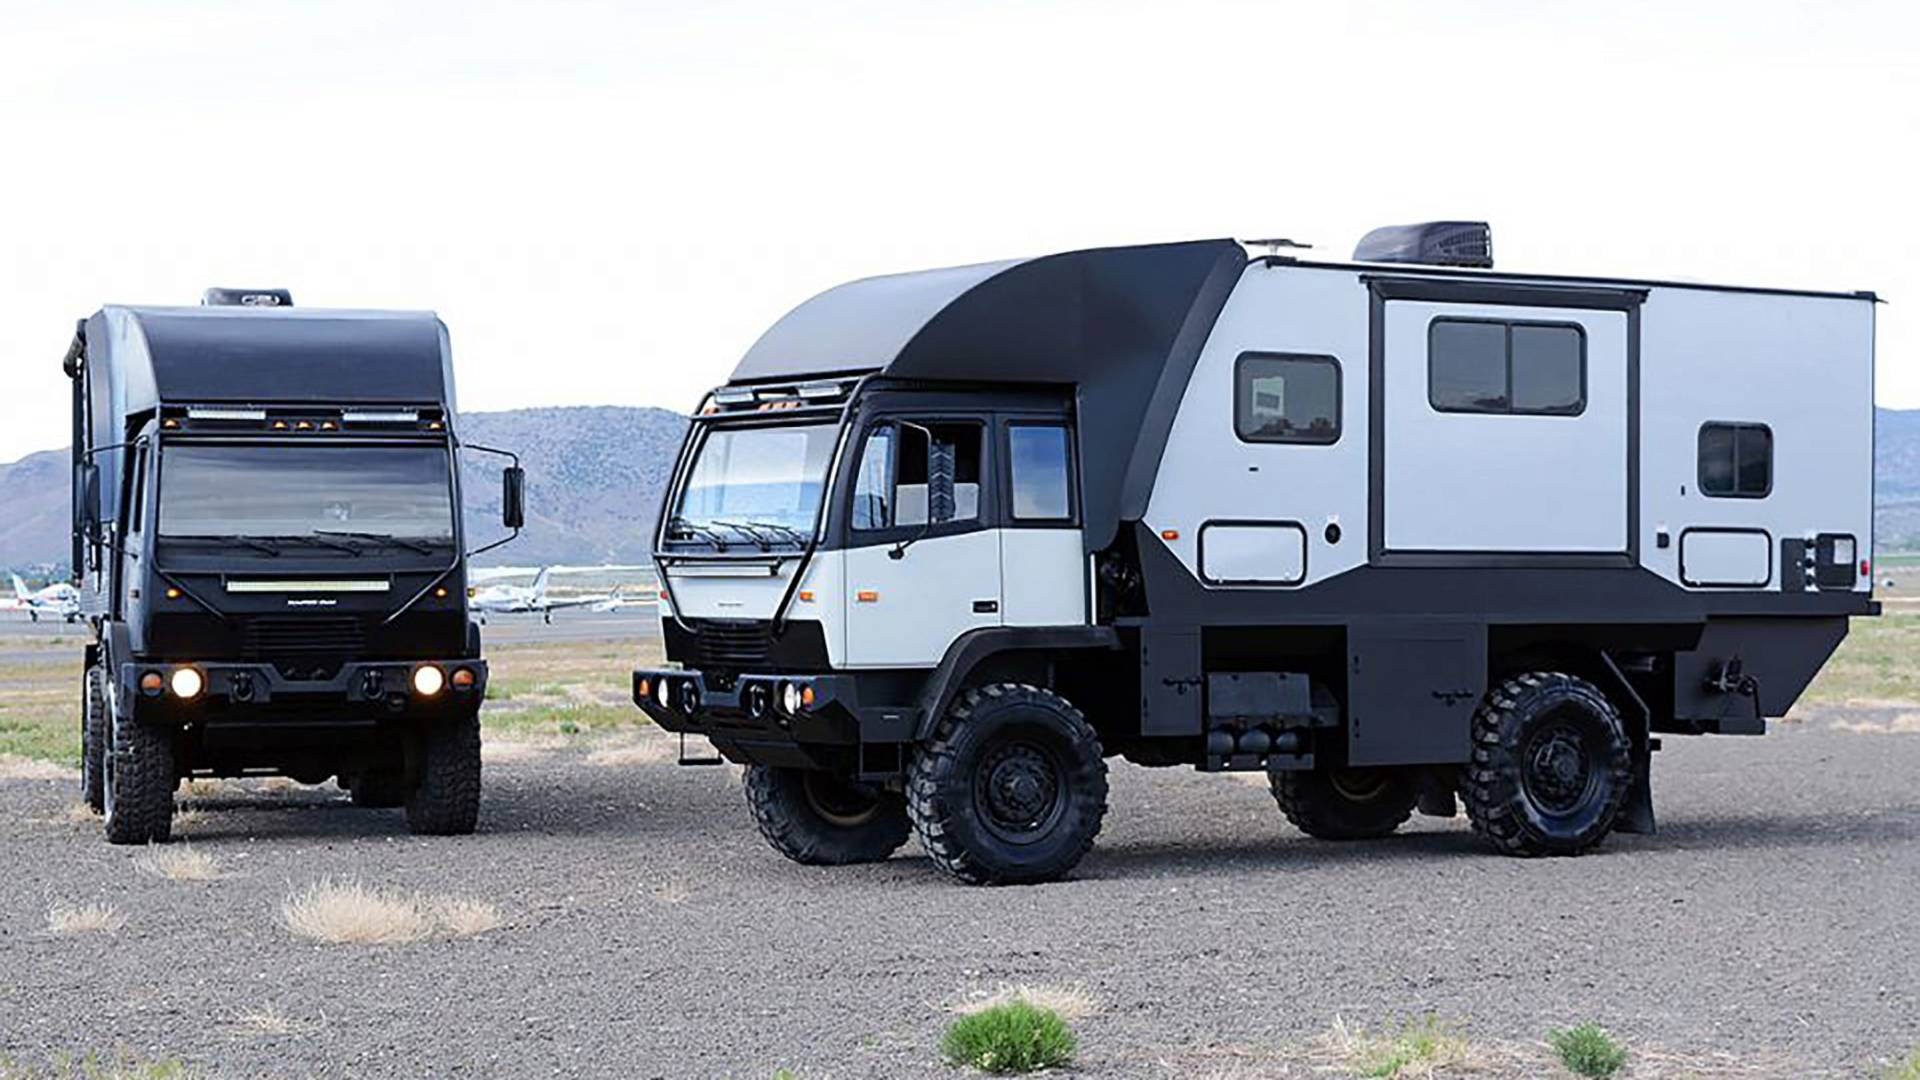 Predator 6.6 Is A Military Vehicle Disguised As An Off-Road RV on barns turned to homes, small shed homes, metal building homes,